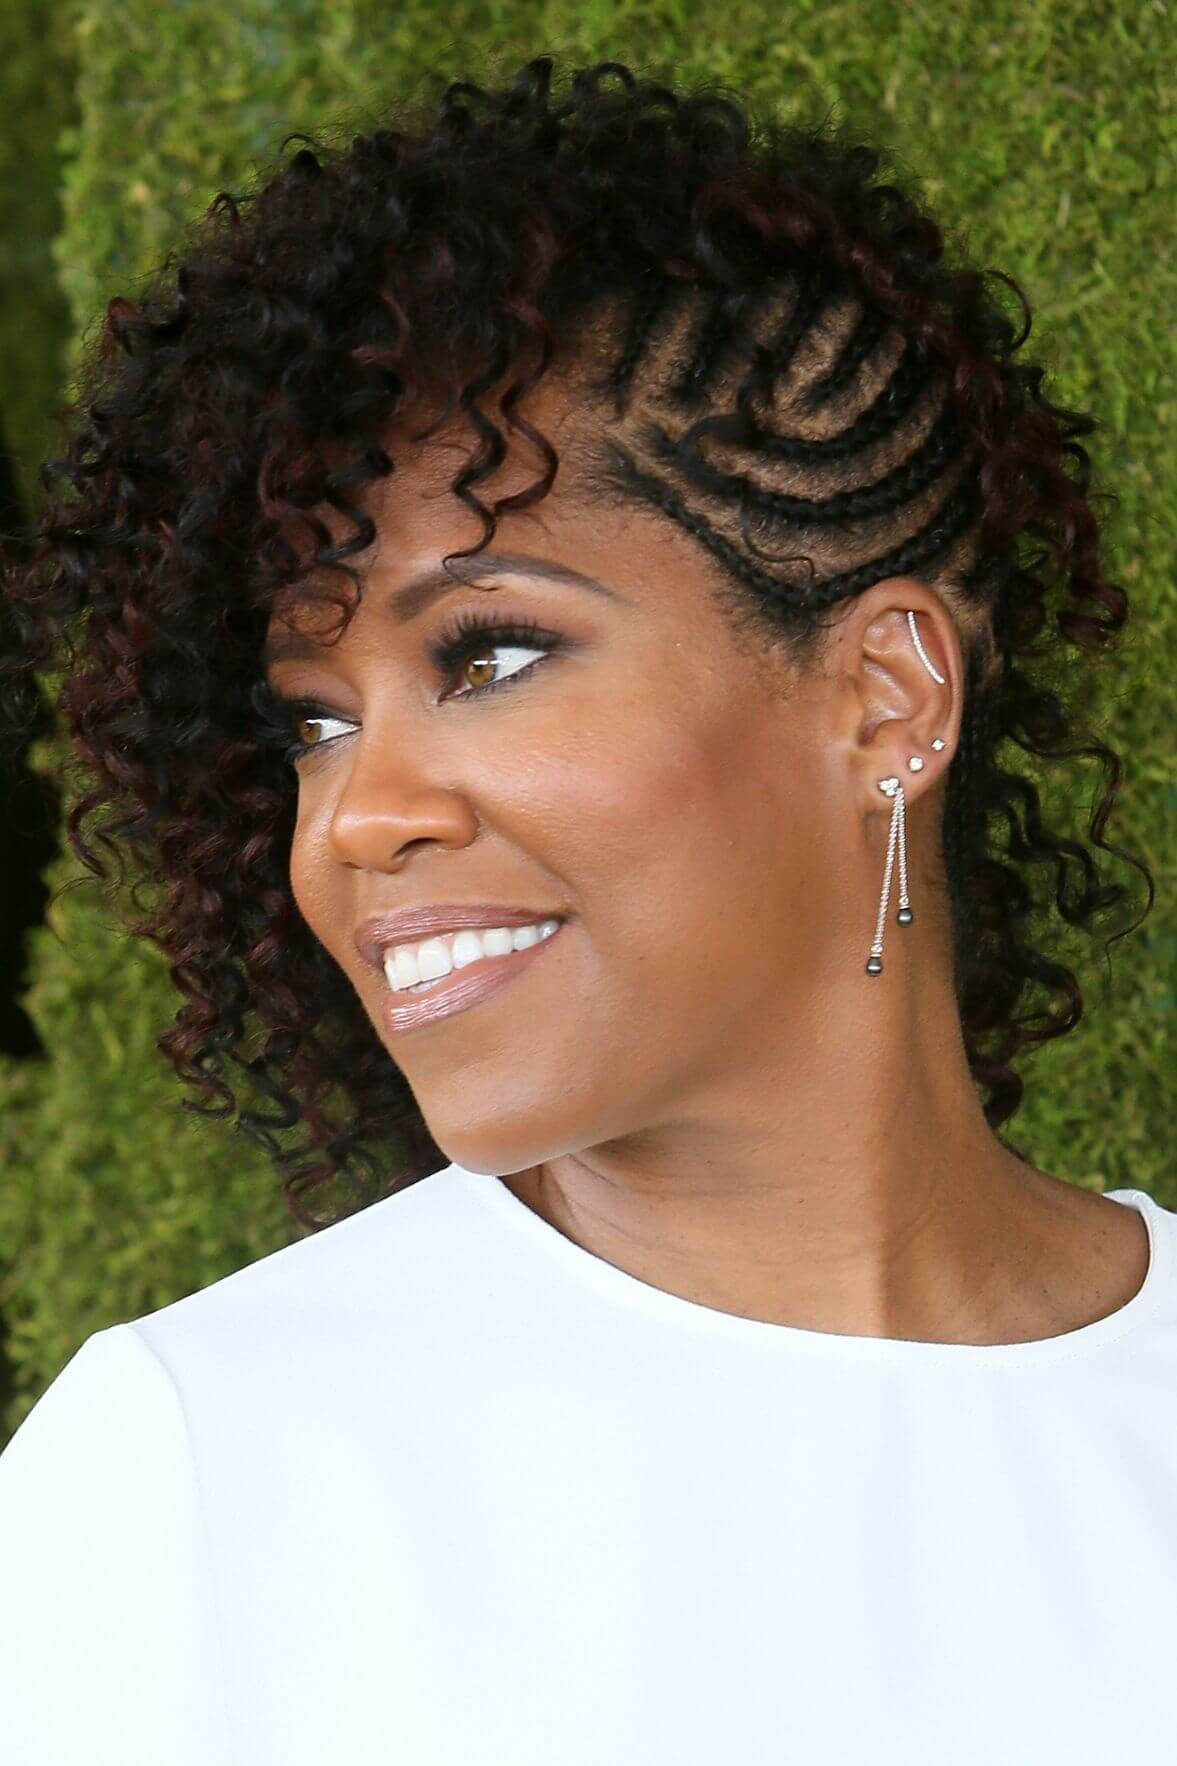 Short Natural Haircuts For Black Females Over 50 - 20+